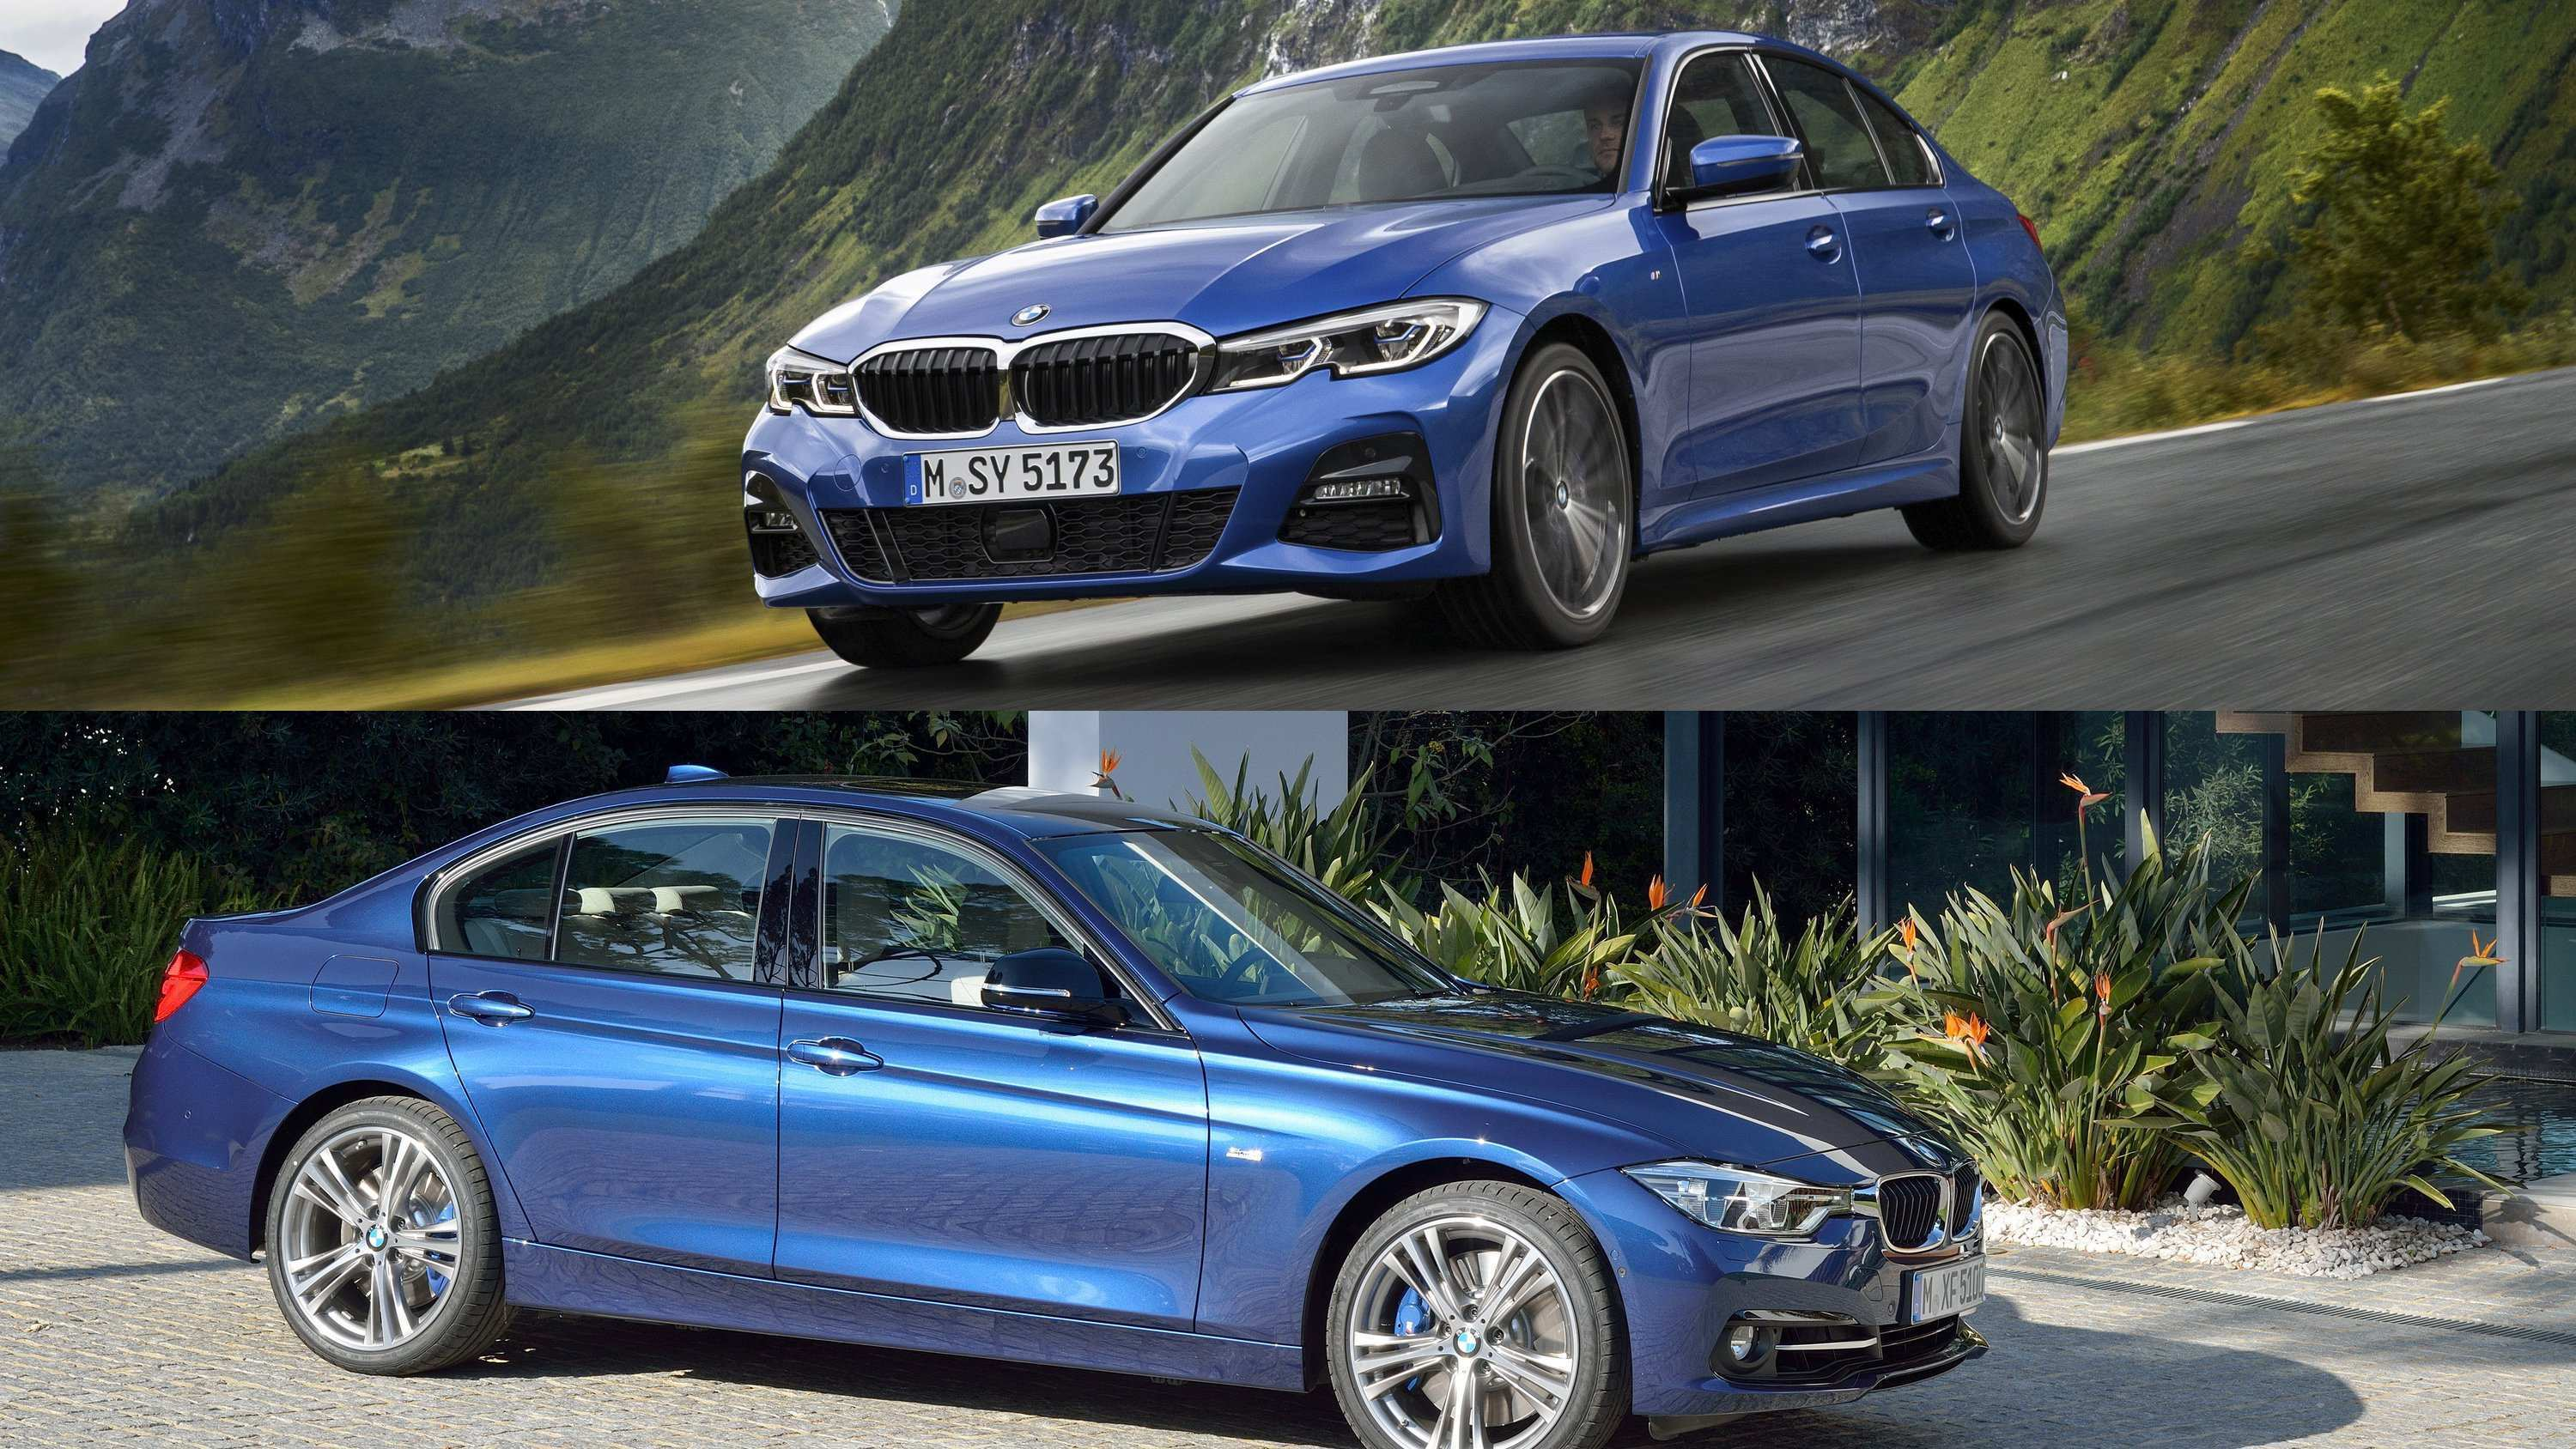 30 New 2020 Bmw Tailgate Price With 2020 Bmw Tailgate Car